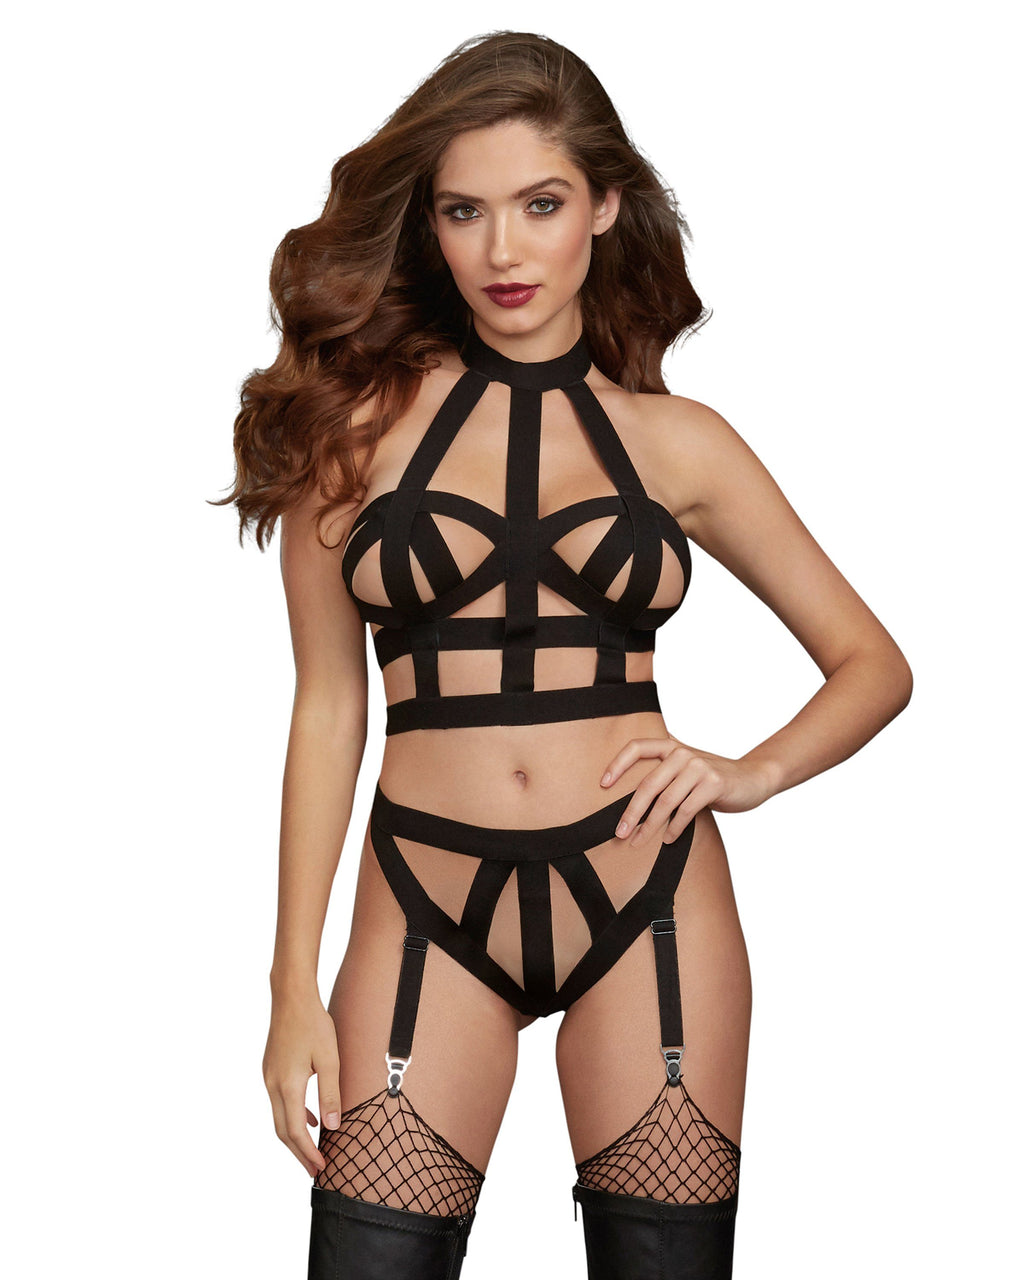 Elastic Strappy Collared Bralette and Garter Panty Fetish Set Fetish Dreamgirl International